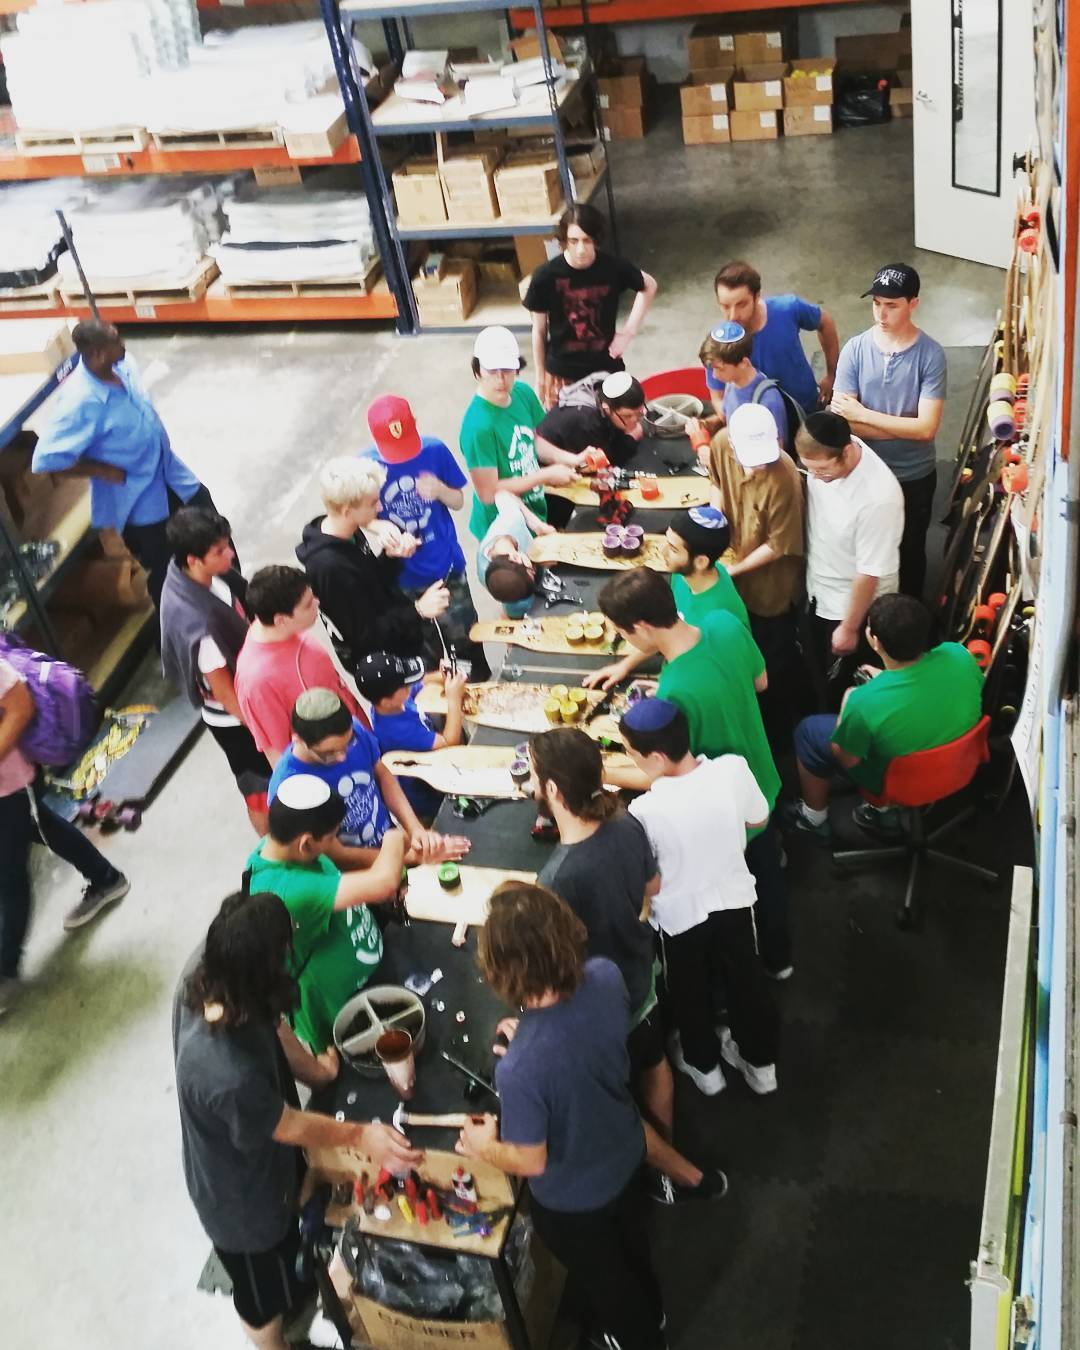 The boys from @friendshipcirclela stopped by the warehouse today to help assemble some skateboards and skate with the local crew!  #LoadedBoards #FriendShipCircle